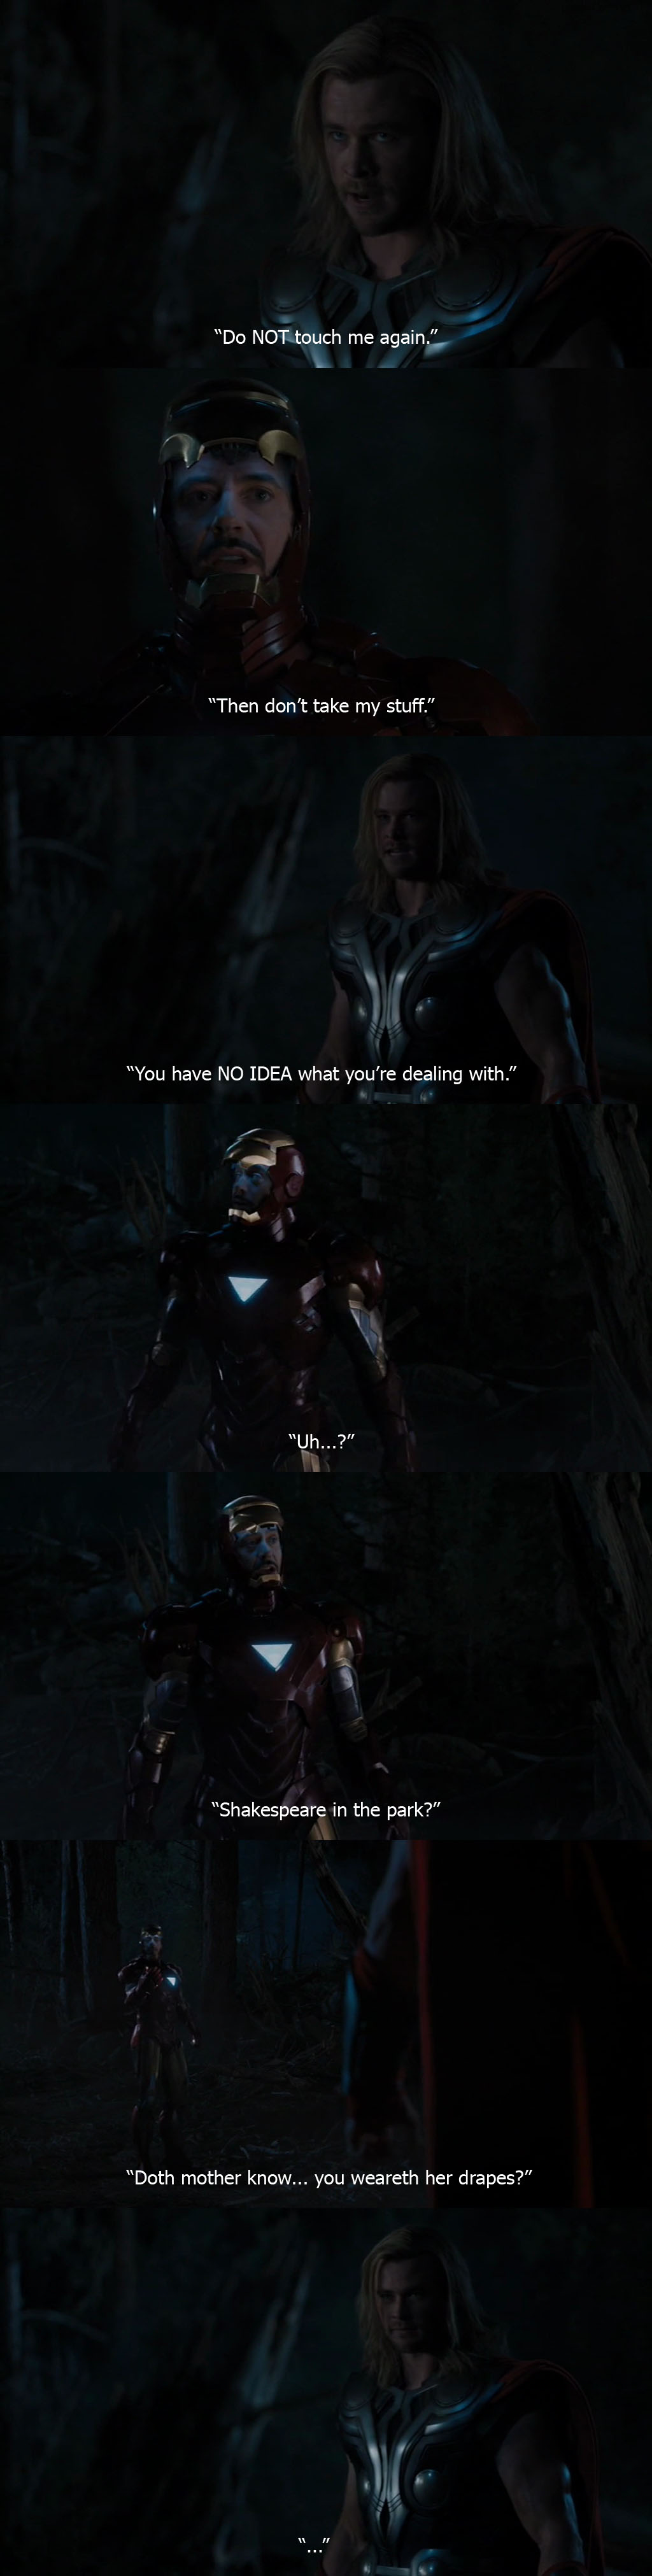 Doth Mother Know You Weareth Her Drapes Ironman Robert Downey Jr Thor Chris Hemsworth The Avengers Joss Whedon 2012